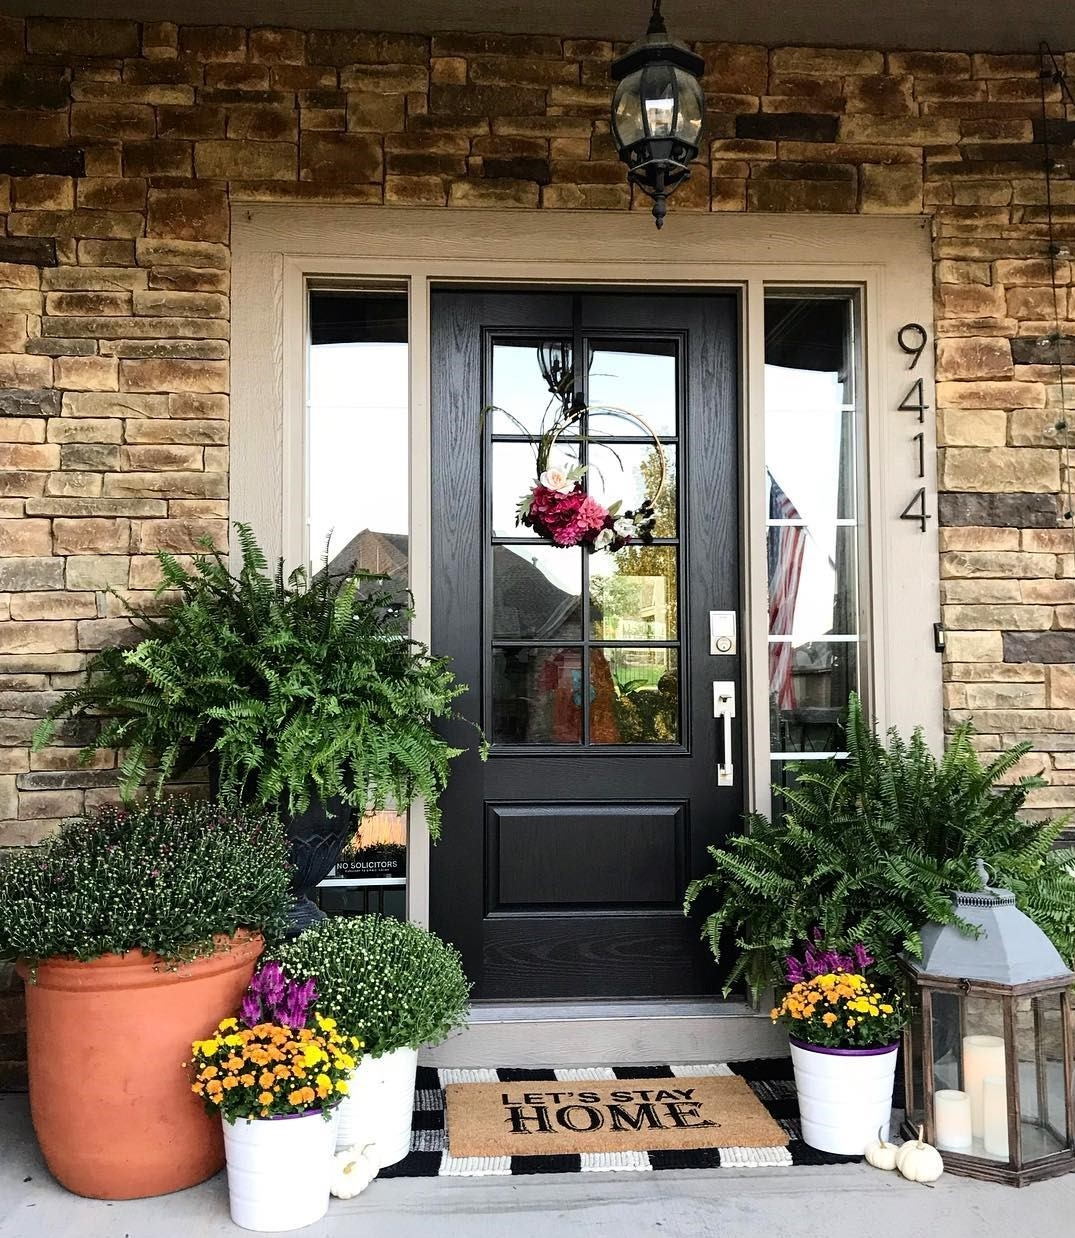 Black farmhouse style front door on brown brick house surrounded by plants